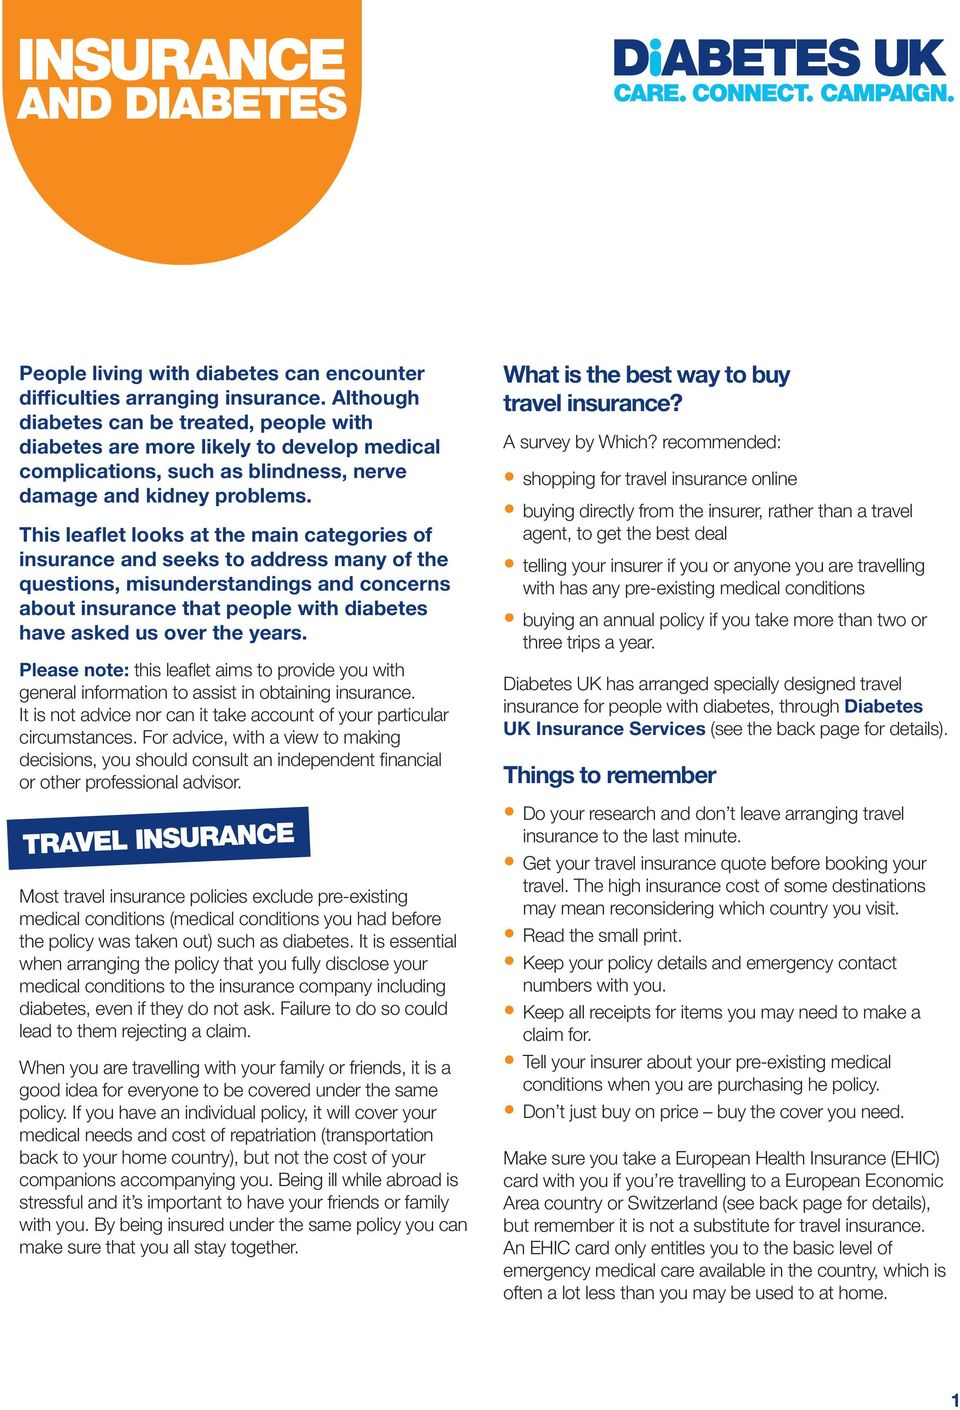 This leaflet looks at the main categories of insurance and seeks to address many of the questions, misunderstandings and concerns about insurance that people with diabetes have asked us over the